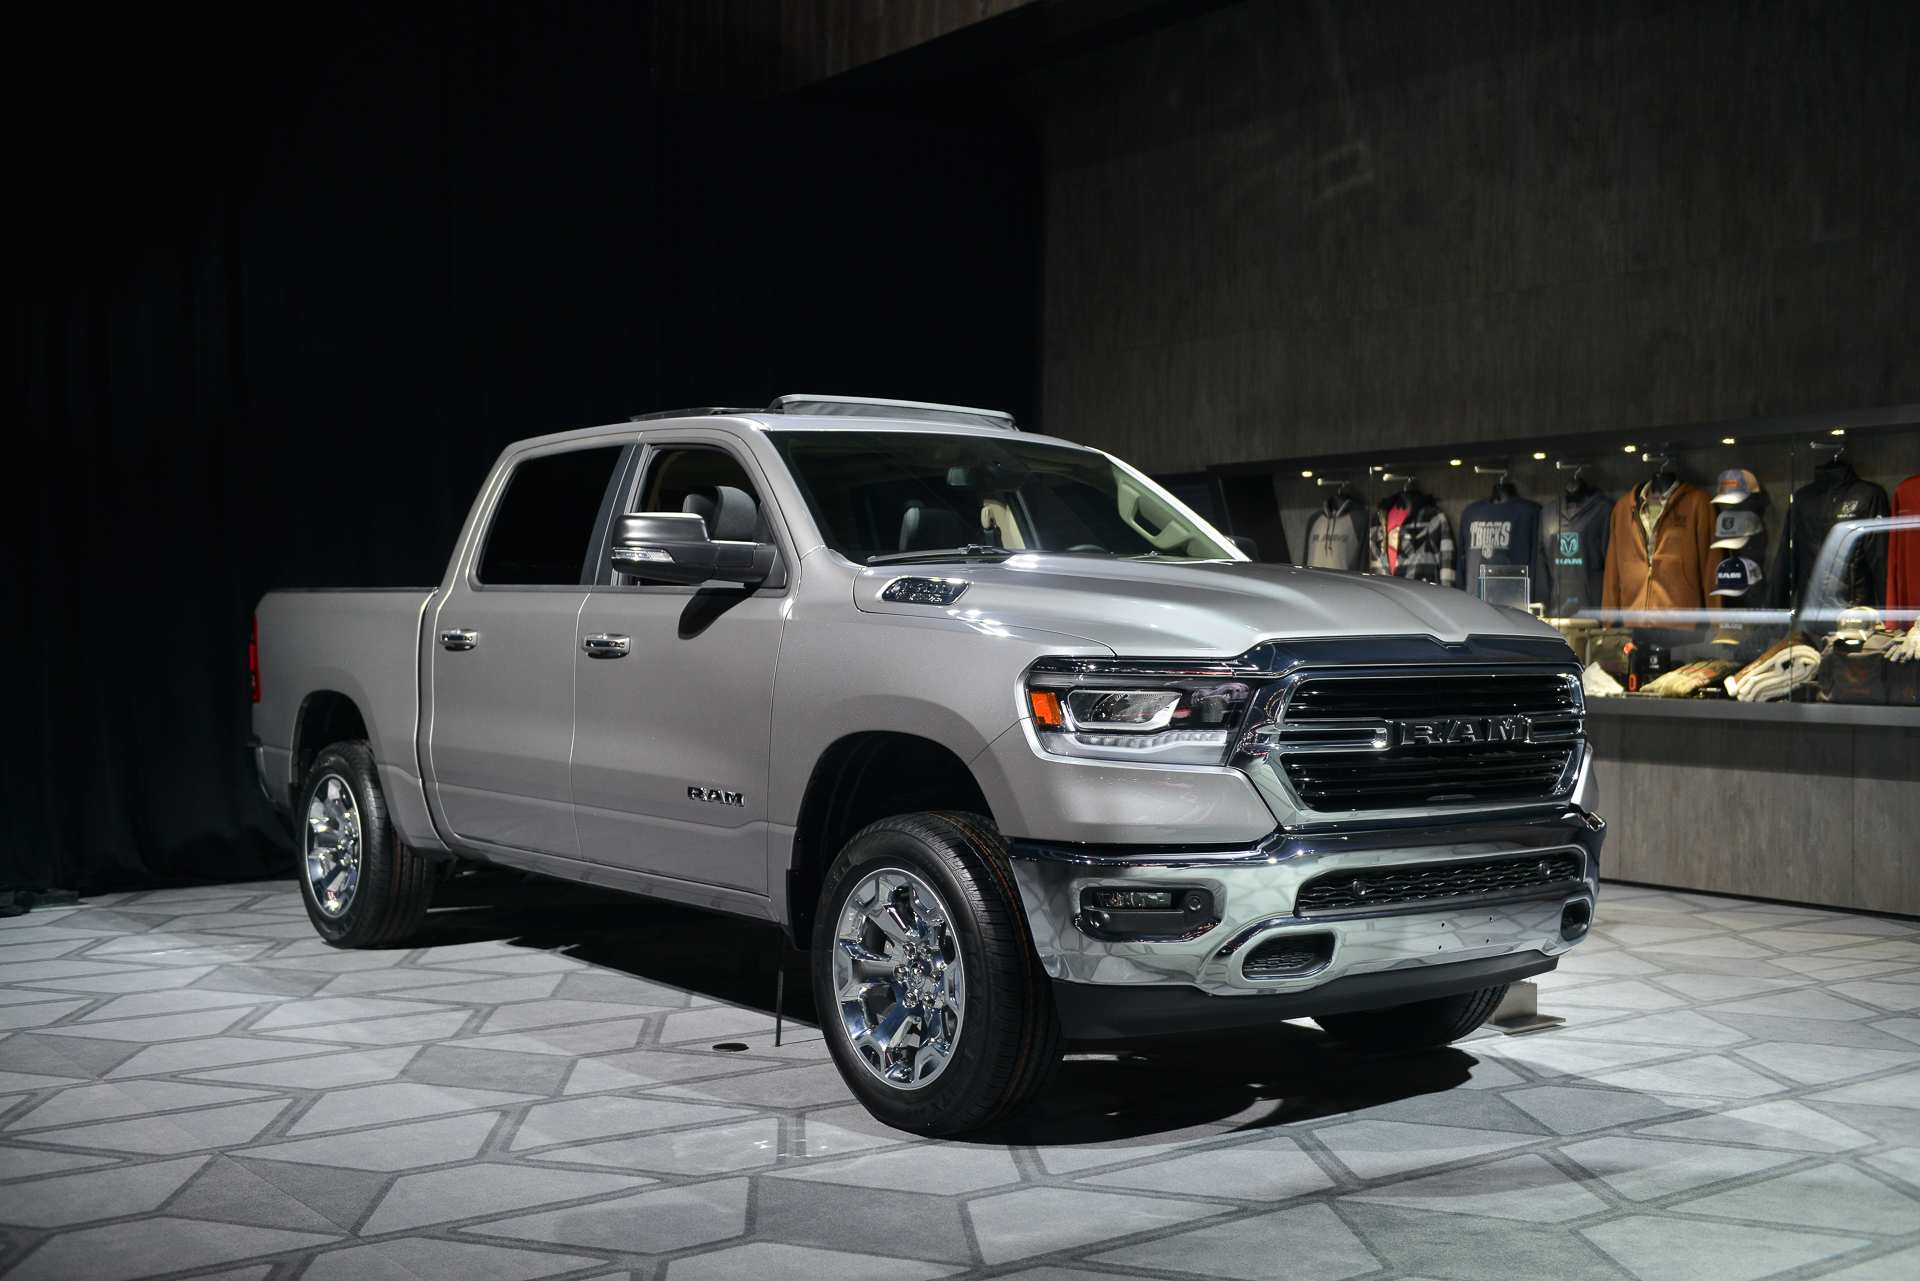 50 New The When Can You Buy A 2019 Dodge Ram Release Date Wallpaper by The When Can You Buy A 2019 Dodge Ram Release Date